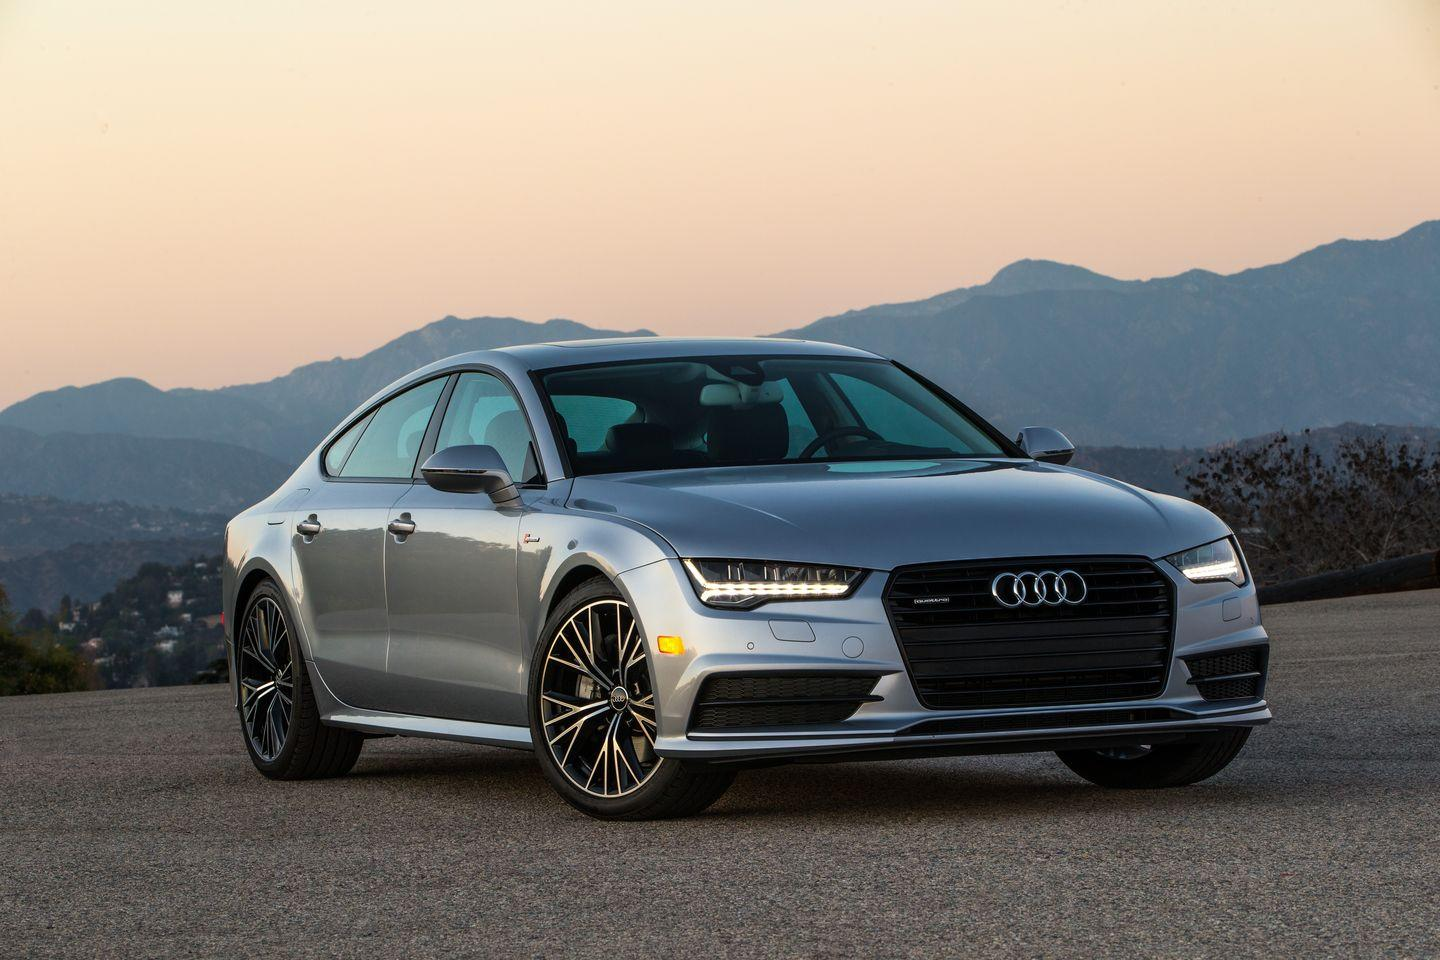 """<p><strong>2.39 times</strong> more likely to be stolen than the average 2016–2018 model<br></p><p>We have a theory as to why <a href=""""https://www.caranddriver.com/audi/a7"""" rel=""""nofollow noopener"""" target=""""_blank"""" data-ylk=""""slk:the fastback Audi A7"""" class=""""link rapid-noclick-resp"""">the fastback Audi A7</a> is more likely to be stolen than the average car: Just look at it.</p>"""